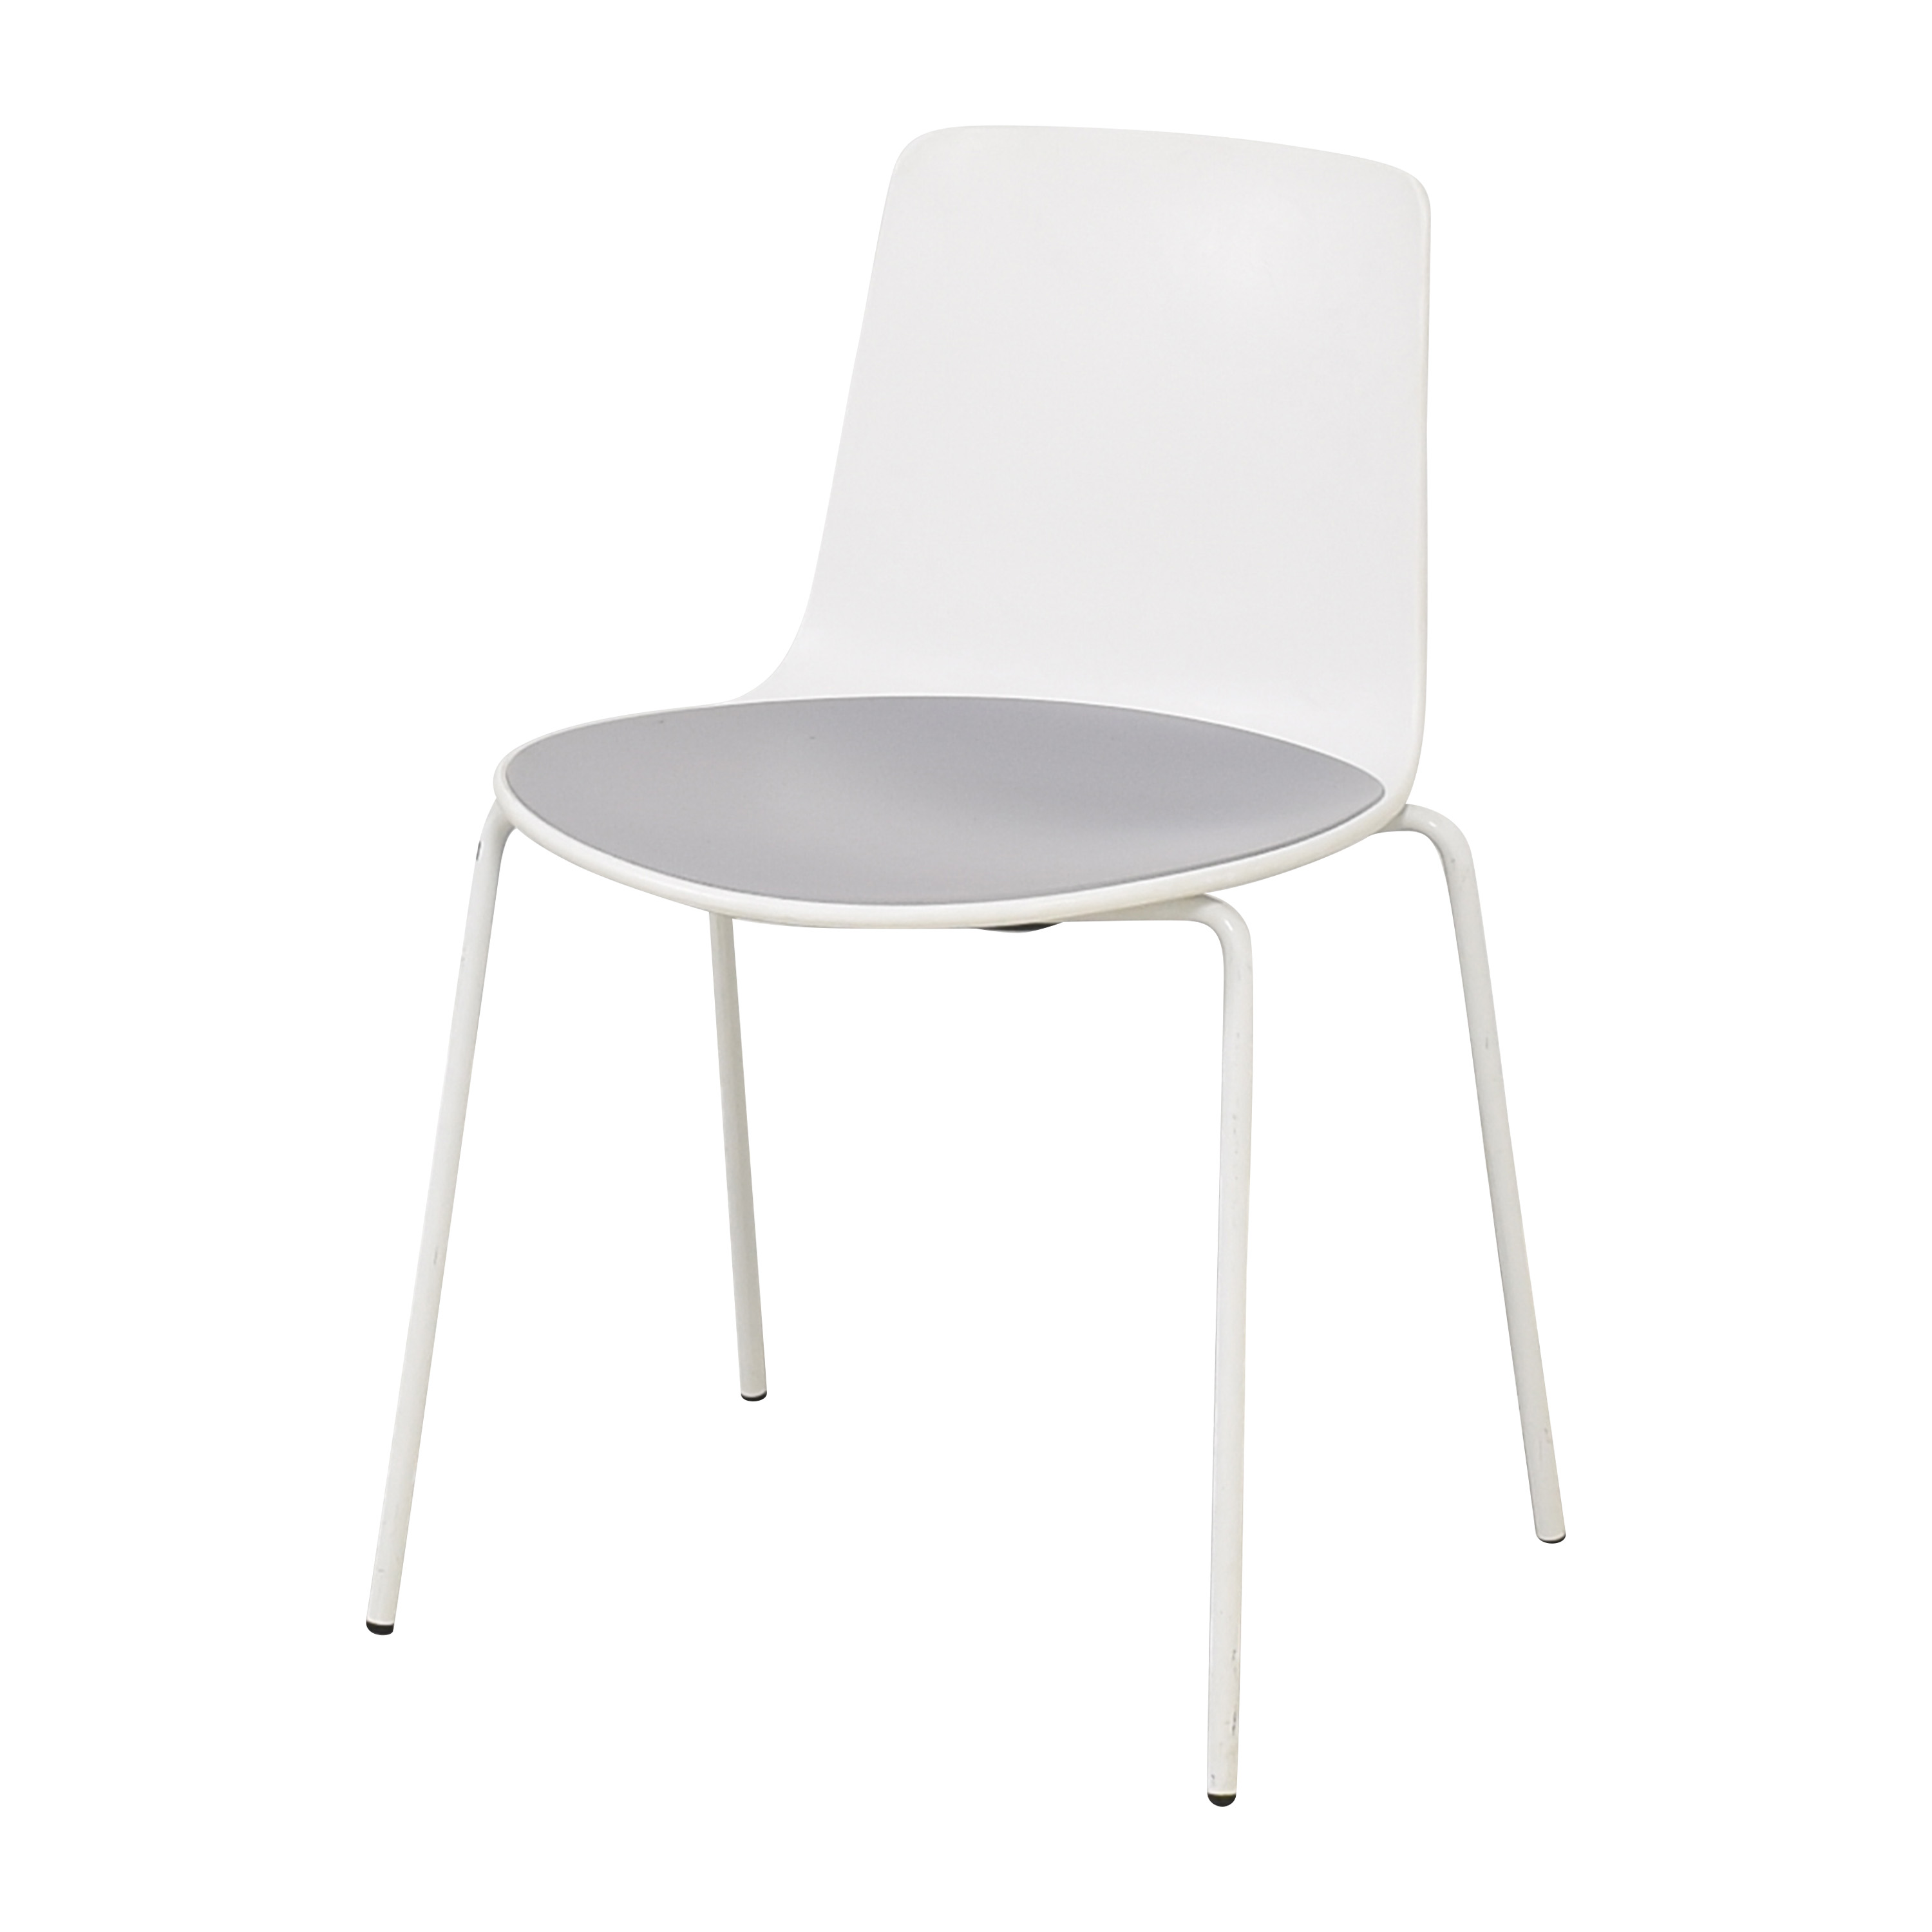 Coalesse Coalesse Enea Lottus Side Chairs second hand